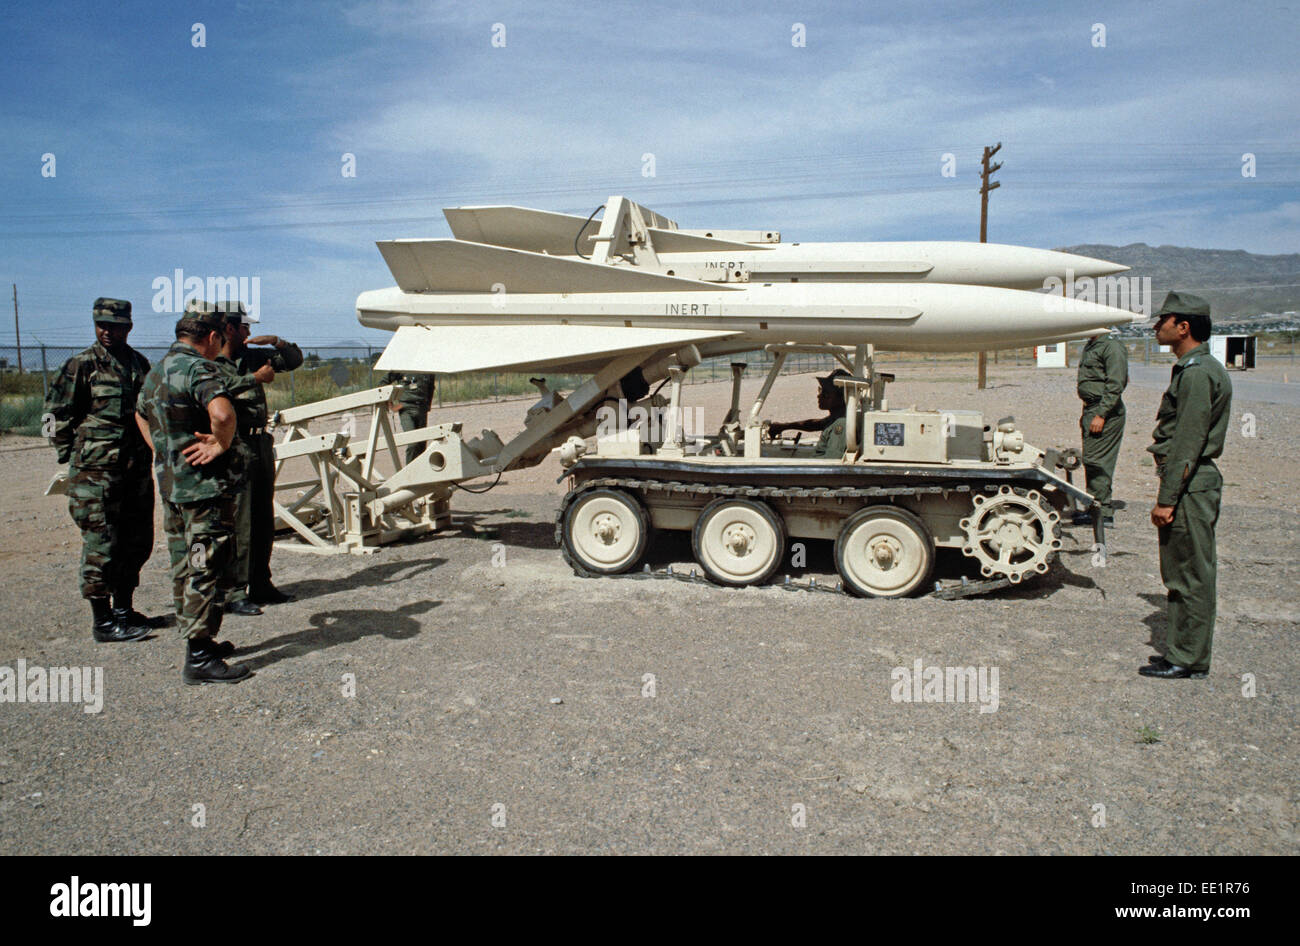 EGYPTIAN ARMY TRAINING ON HAWK MISSILES, McGREGOR RANGE, NEW MEXCO, UNITED STATES ARMY, USA - Stock Image